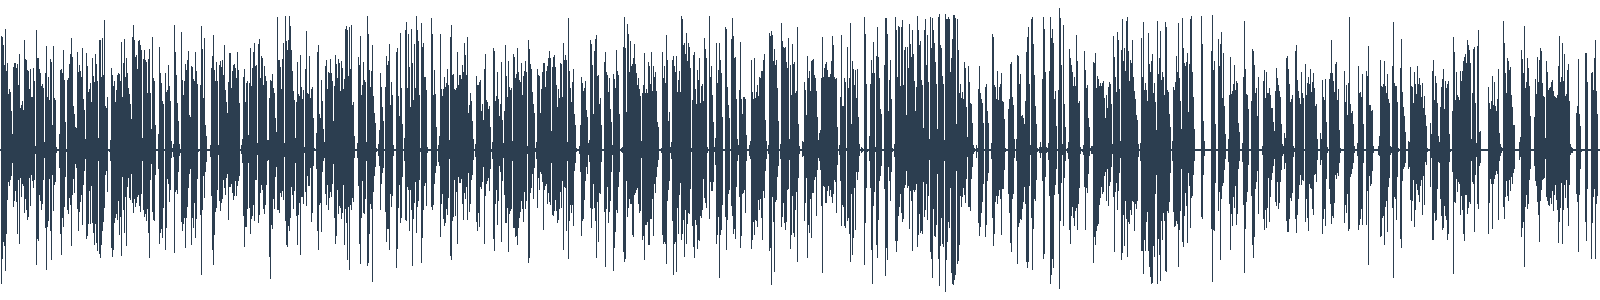 Do plaviek waveform